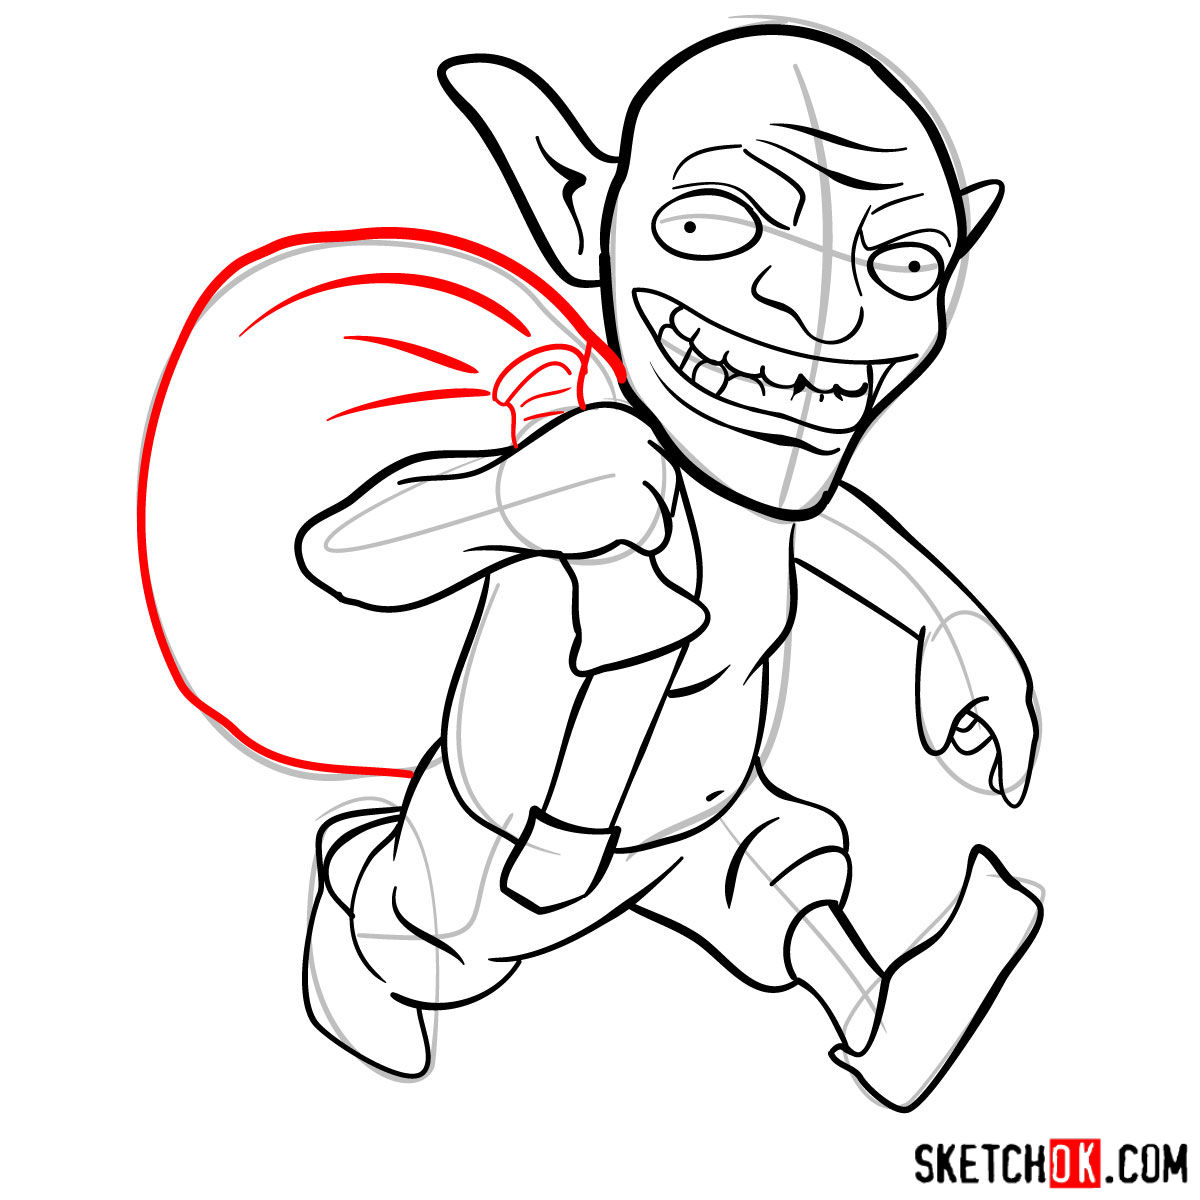 How to draw Goblin from Clash of Clans - step 10